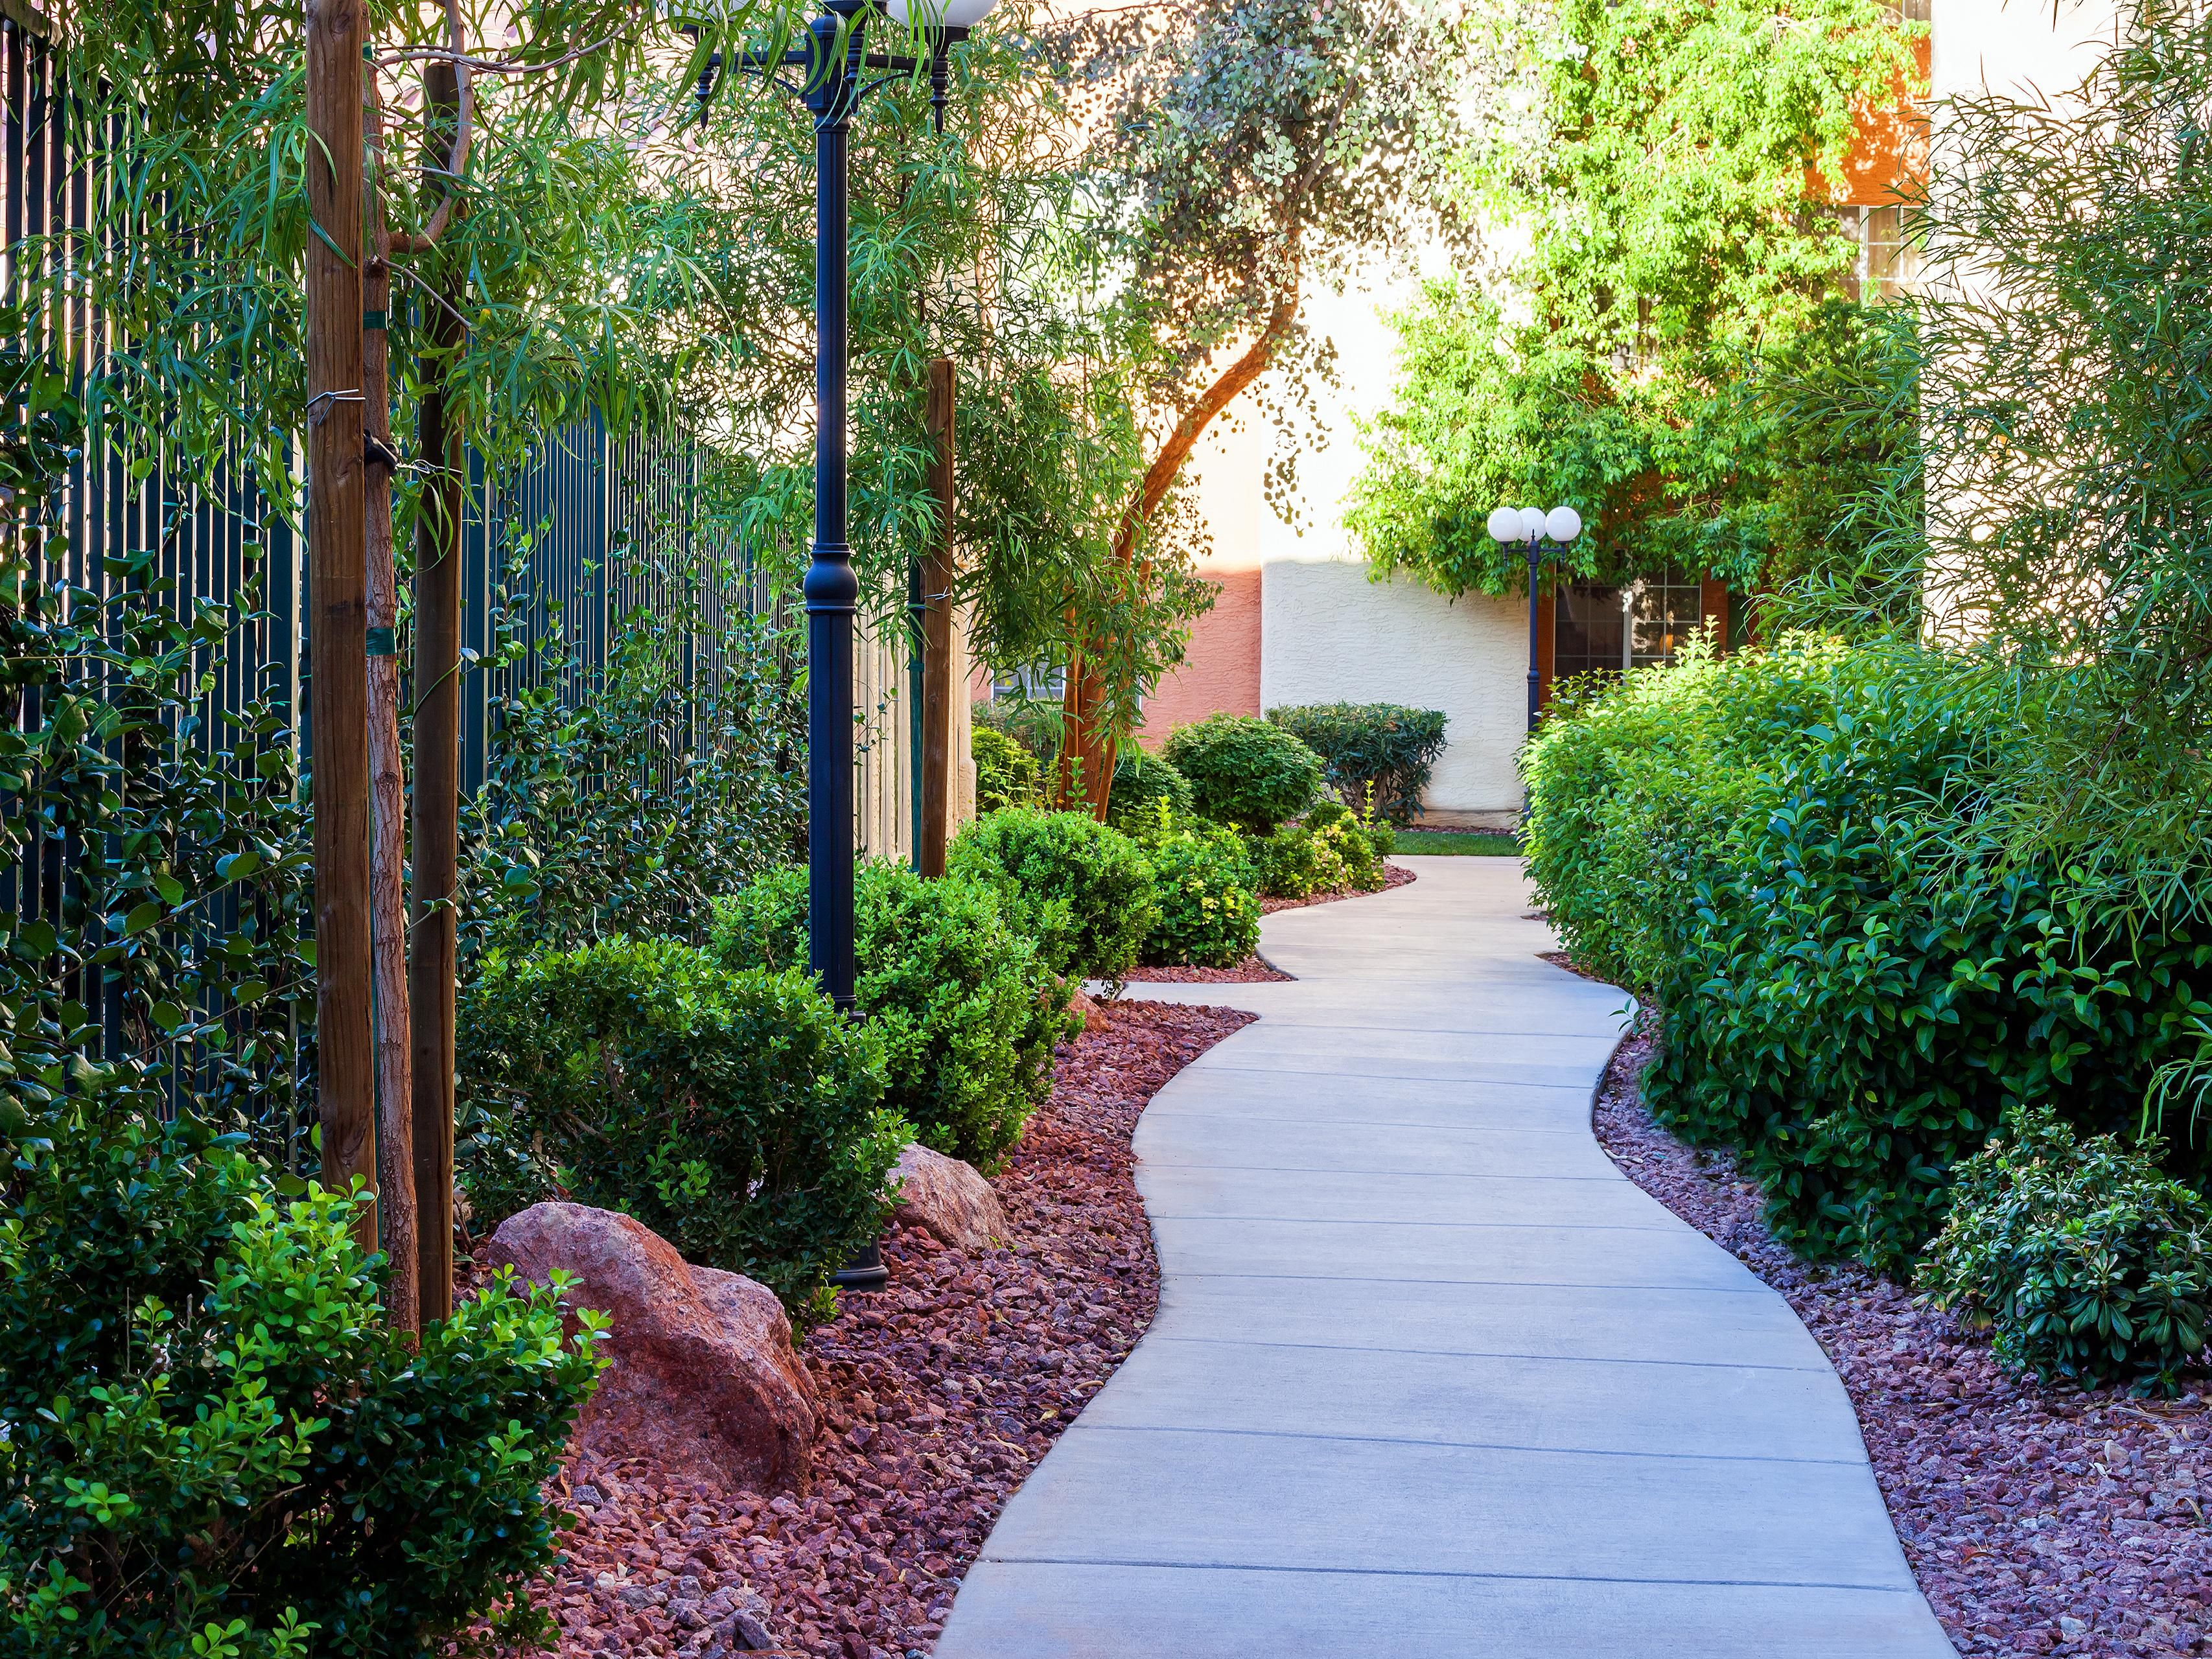 Enjoy the beautifully landscaped walk ways throughout the resort